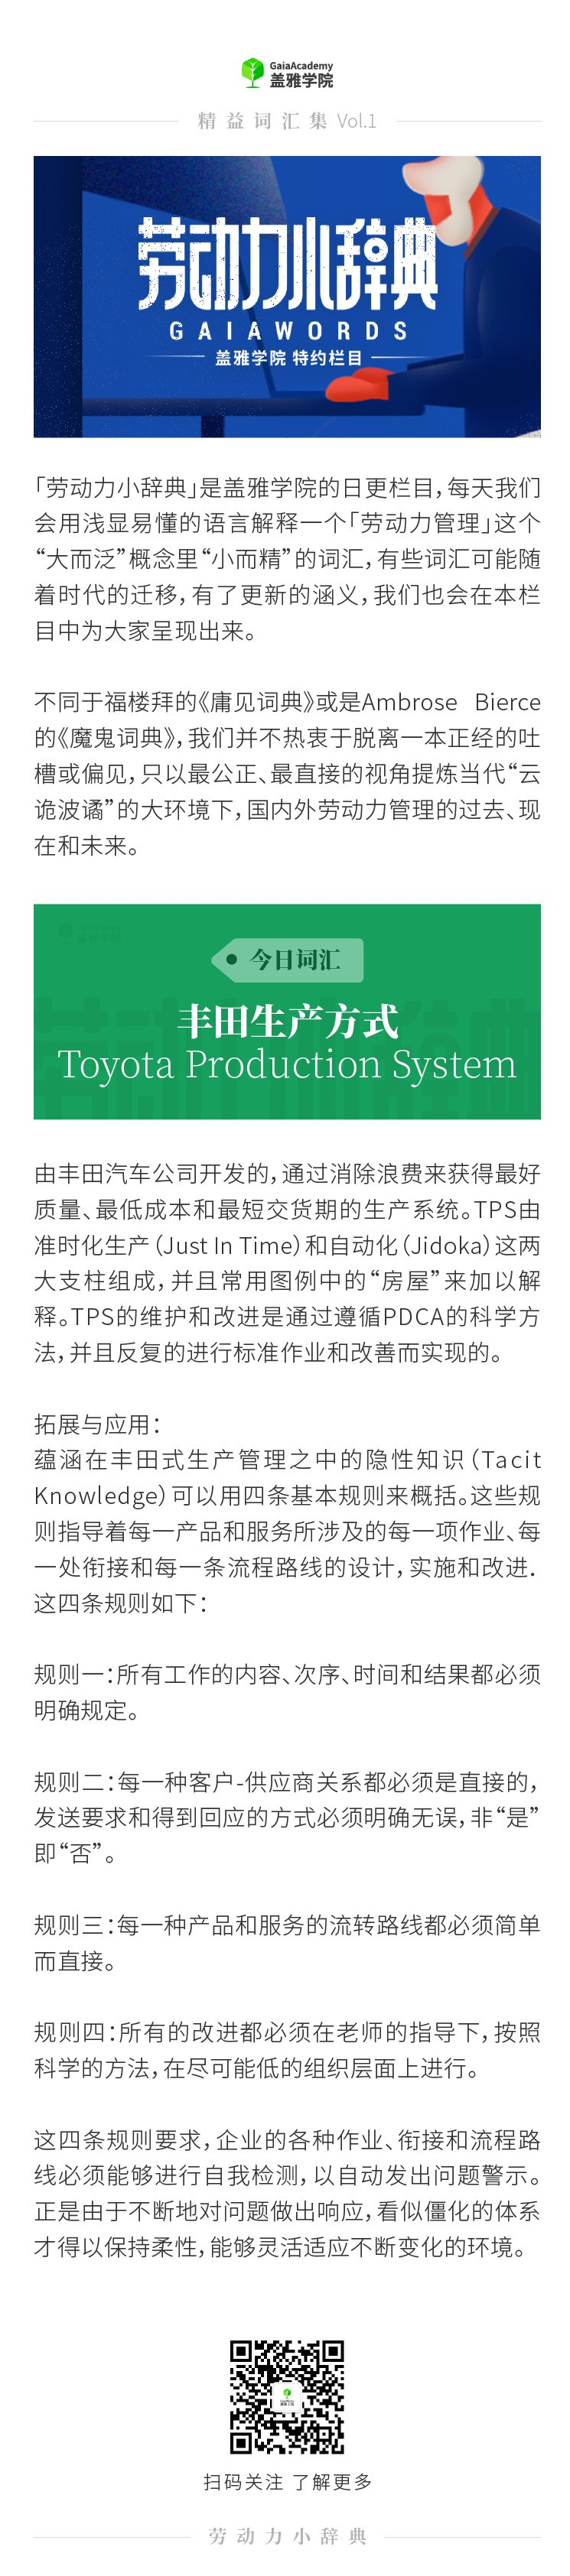 丰田生产方式 Toyota Production System